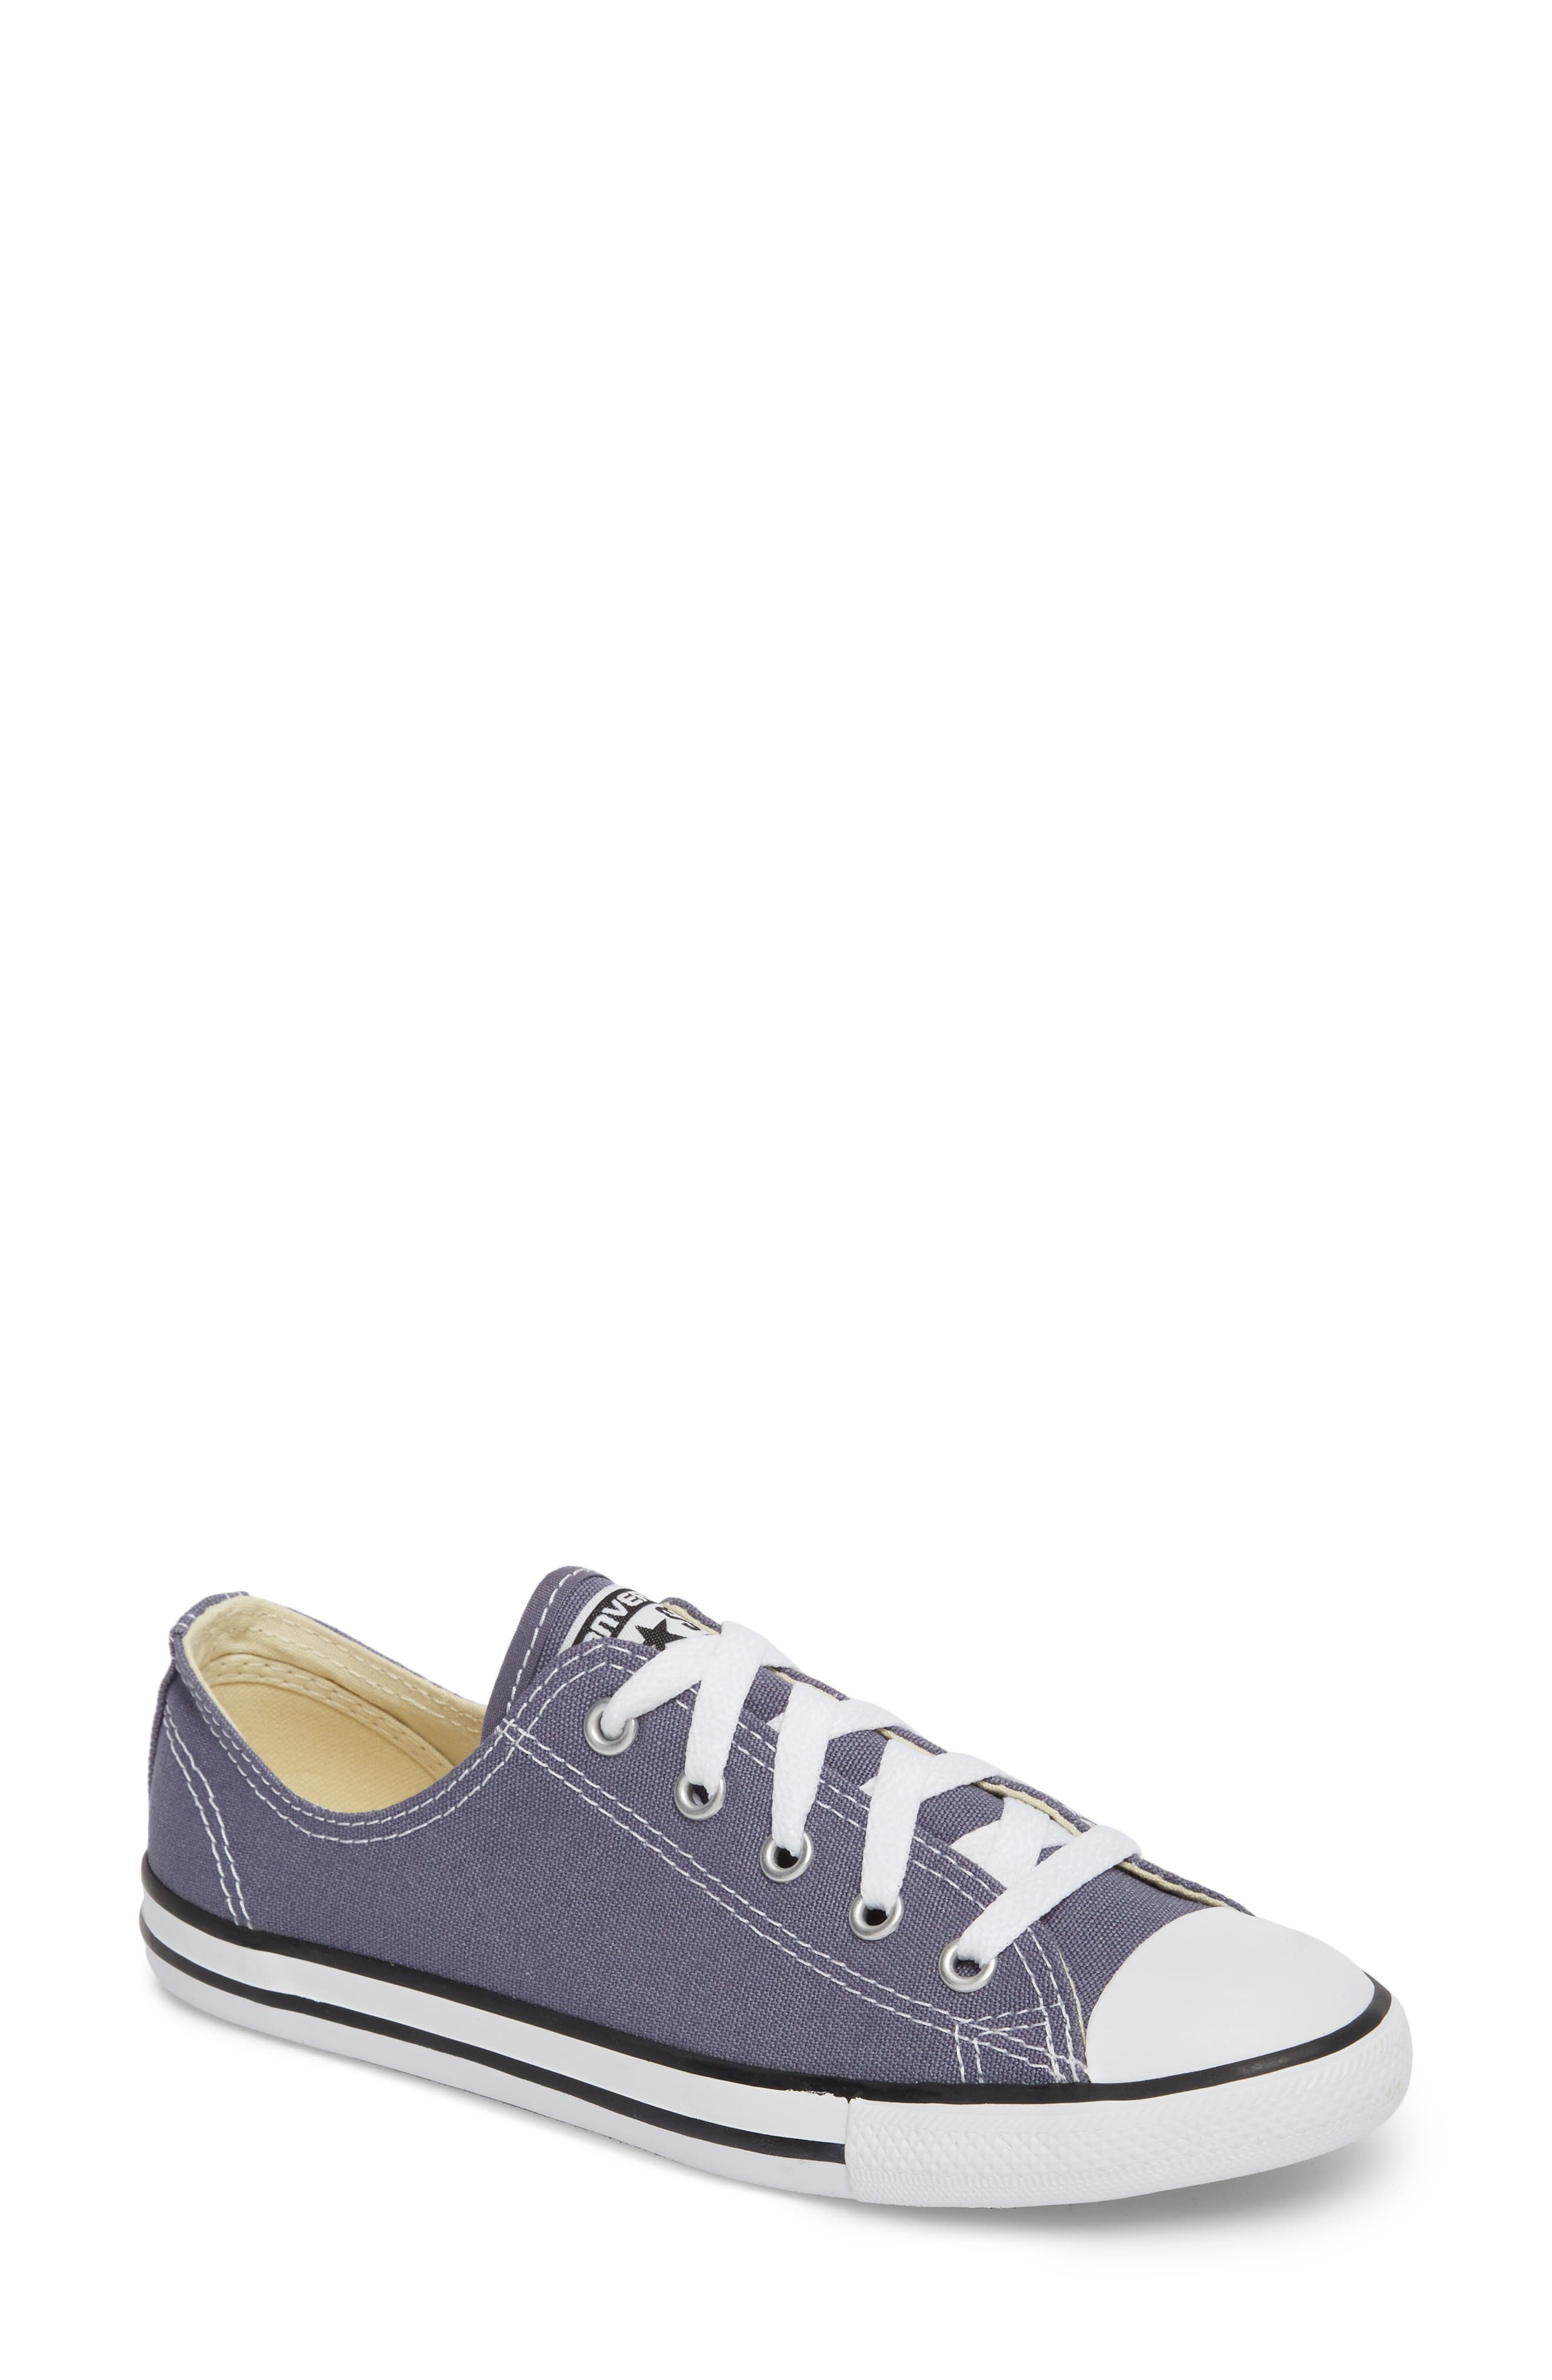 Chuck Taylor<sup>®</sup> All Star<sup>®</sup> Dainty Ox Low Top Sneaker,                         Main,                         color, 023